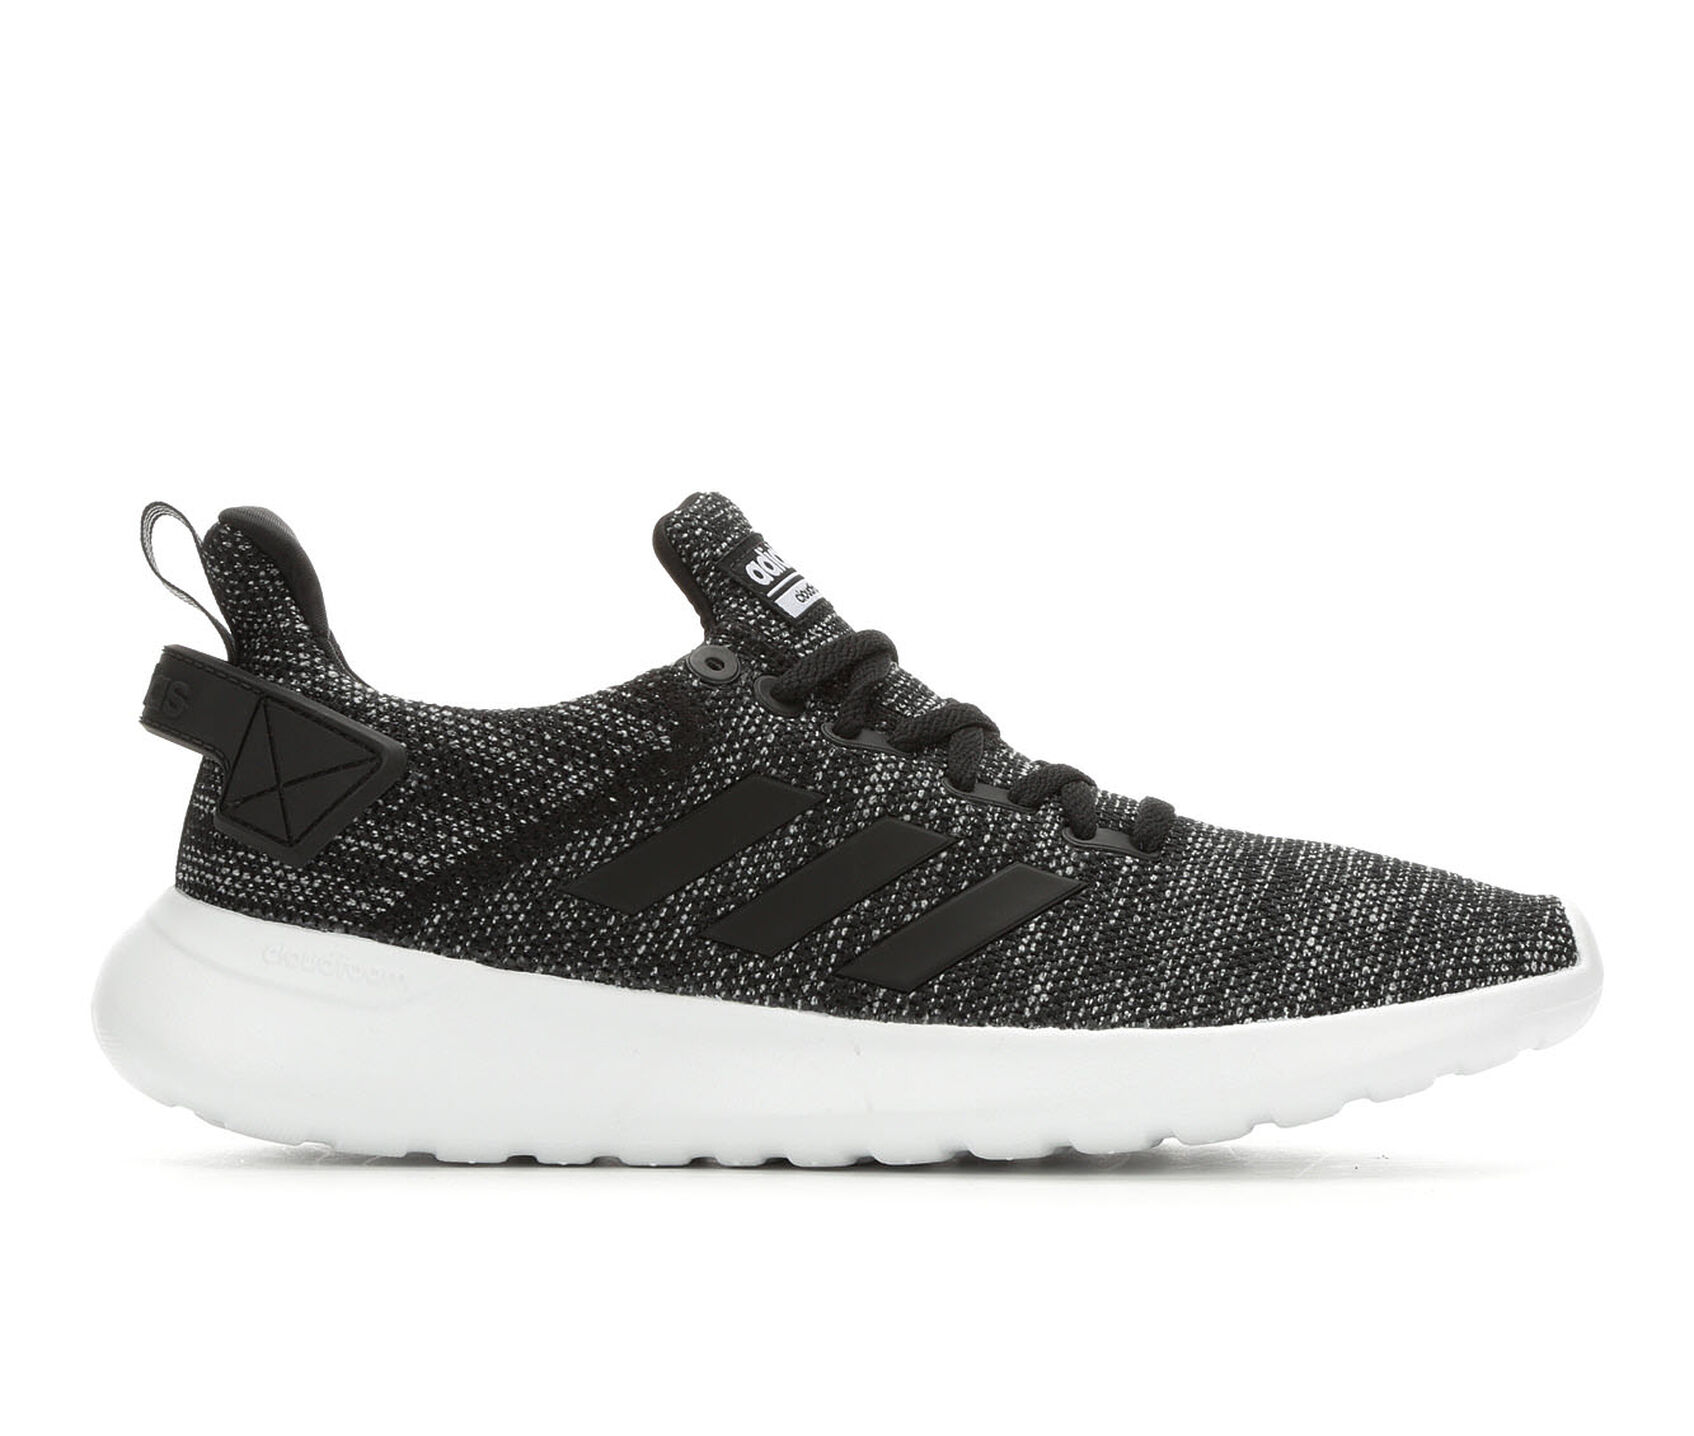 0cfc5033603034 ... Adidas Cloudfoam Lite Racer BYD Sneakers. Previous